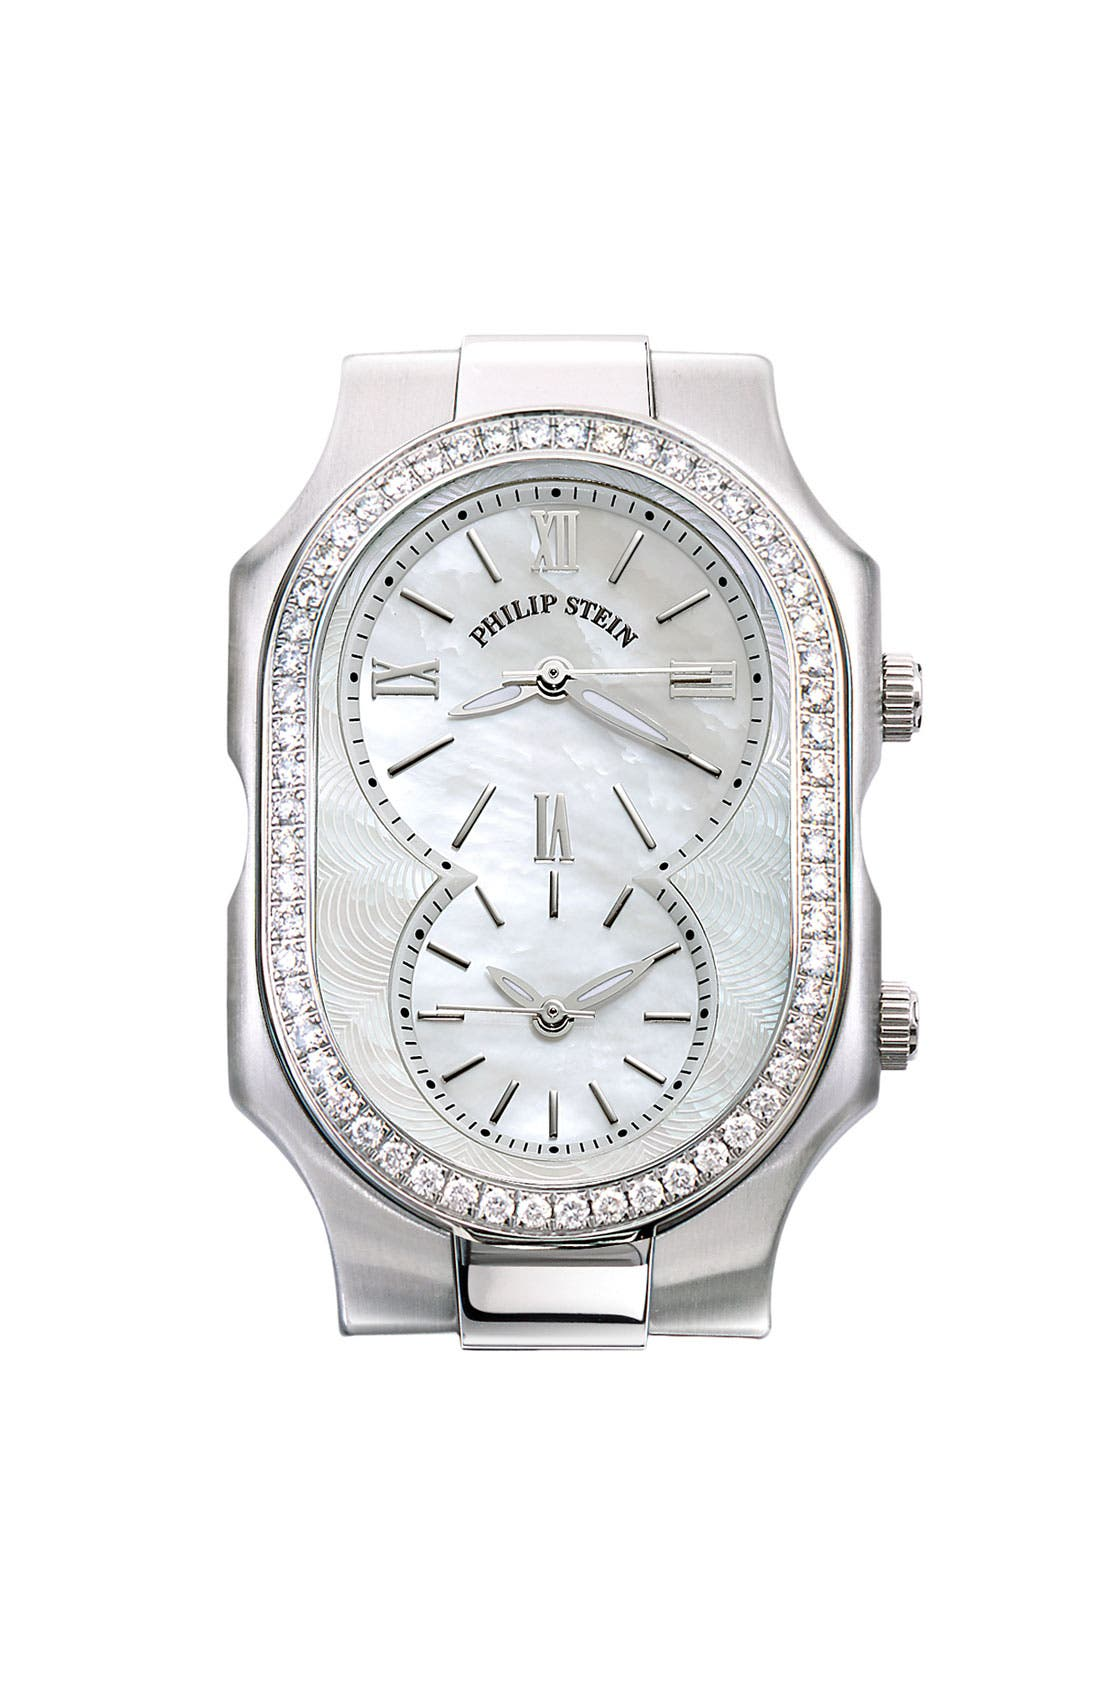 Main Image - Philip Stein® 'Signature' Large Diamond Watch Case